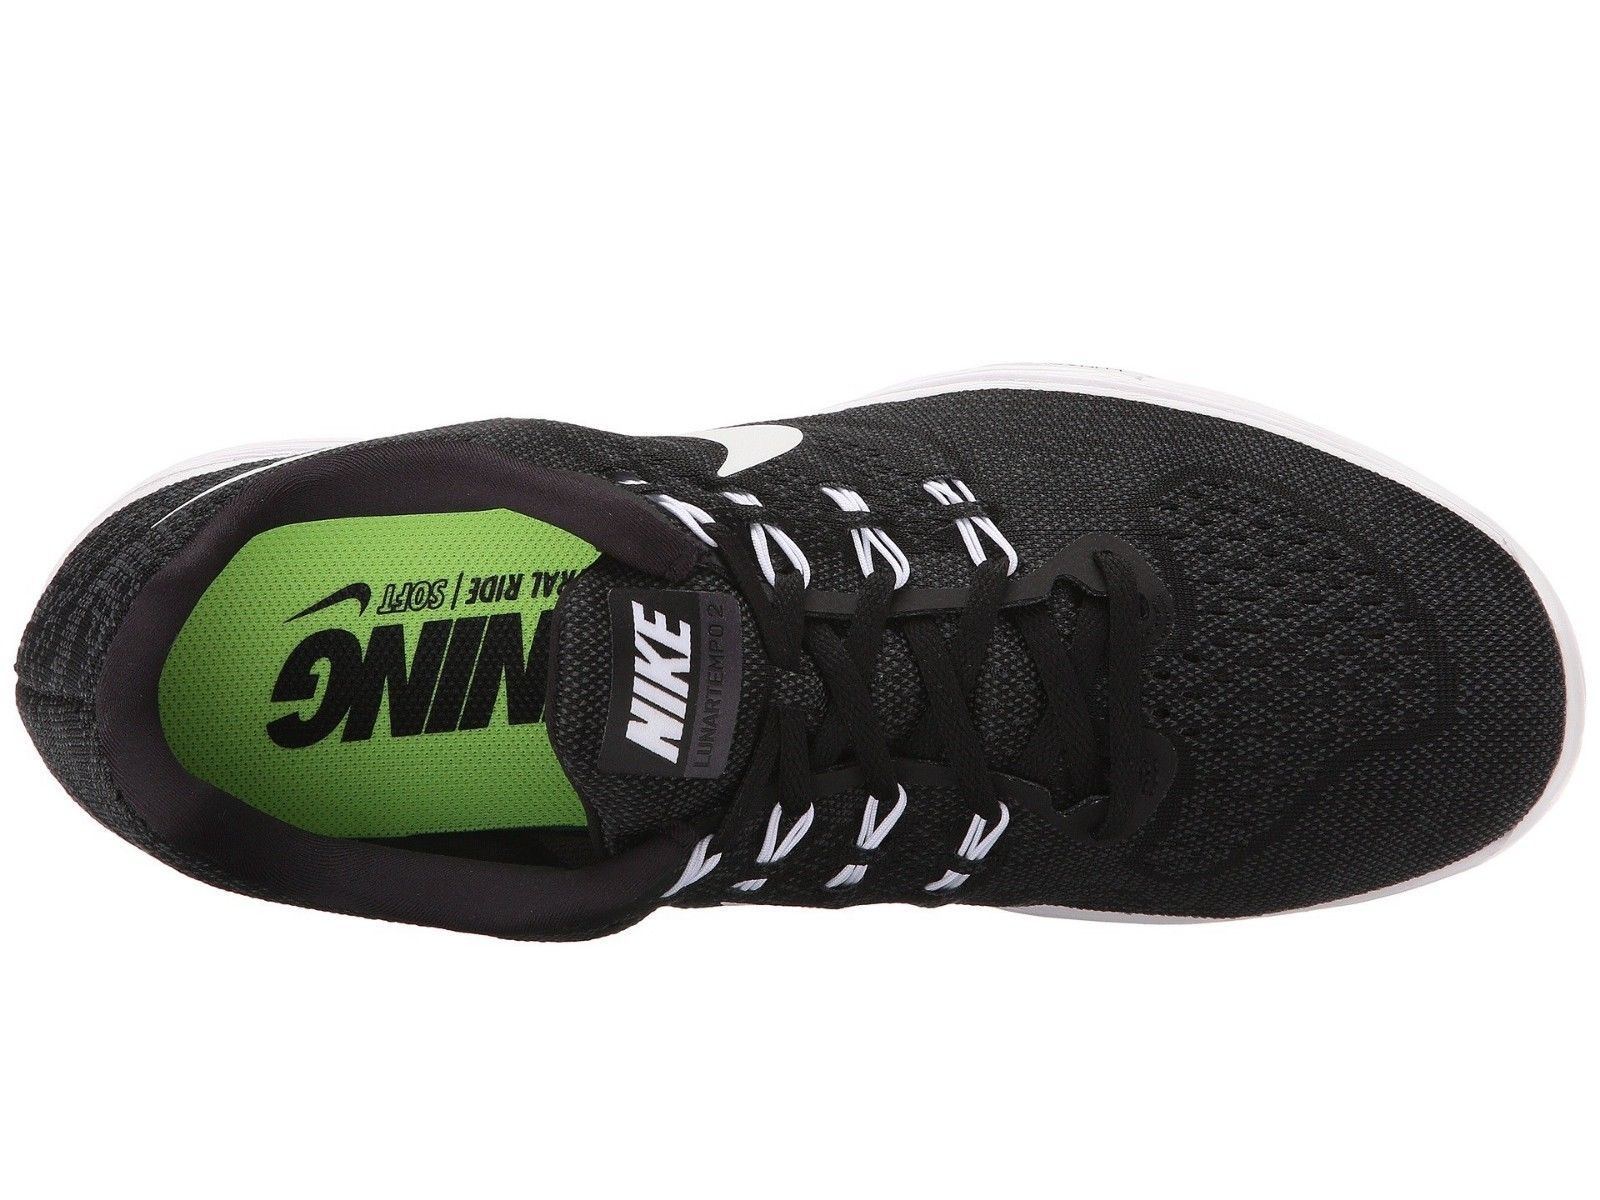 Men's Nike LunarTempo 2 Running Shoes, 818097 002 Sizes 10-13 Black/White/Anthra